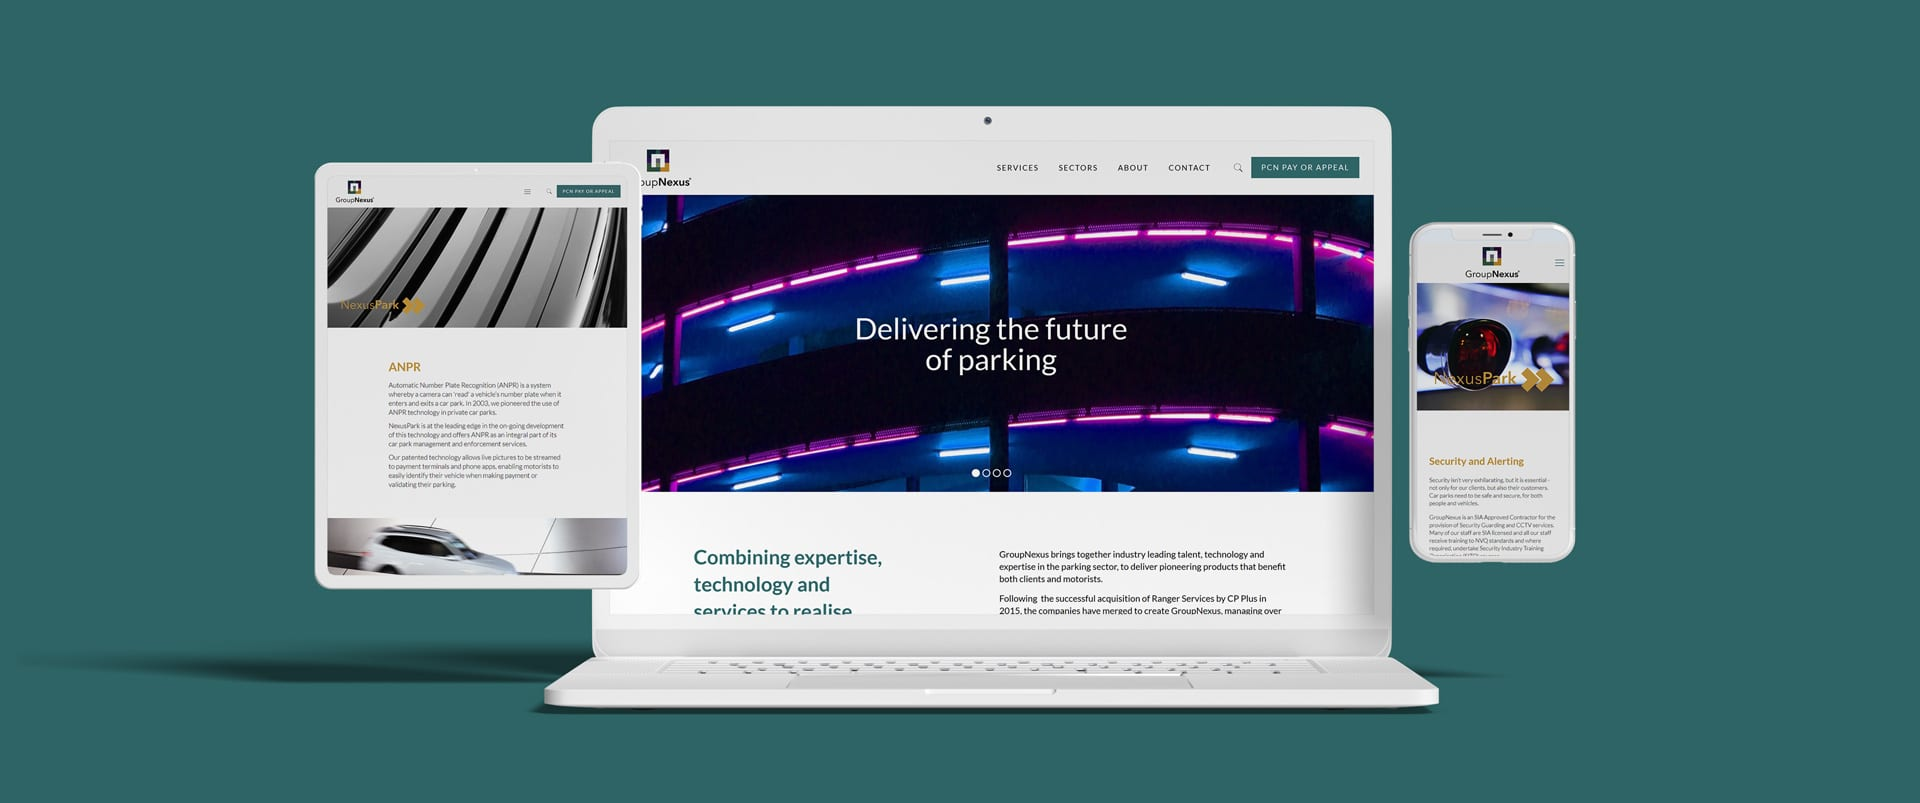 Car parking technology and management company GroupNexus